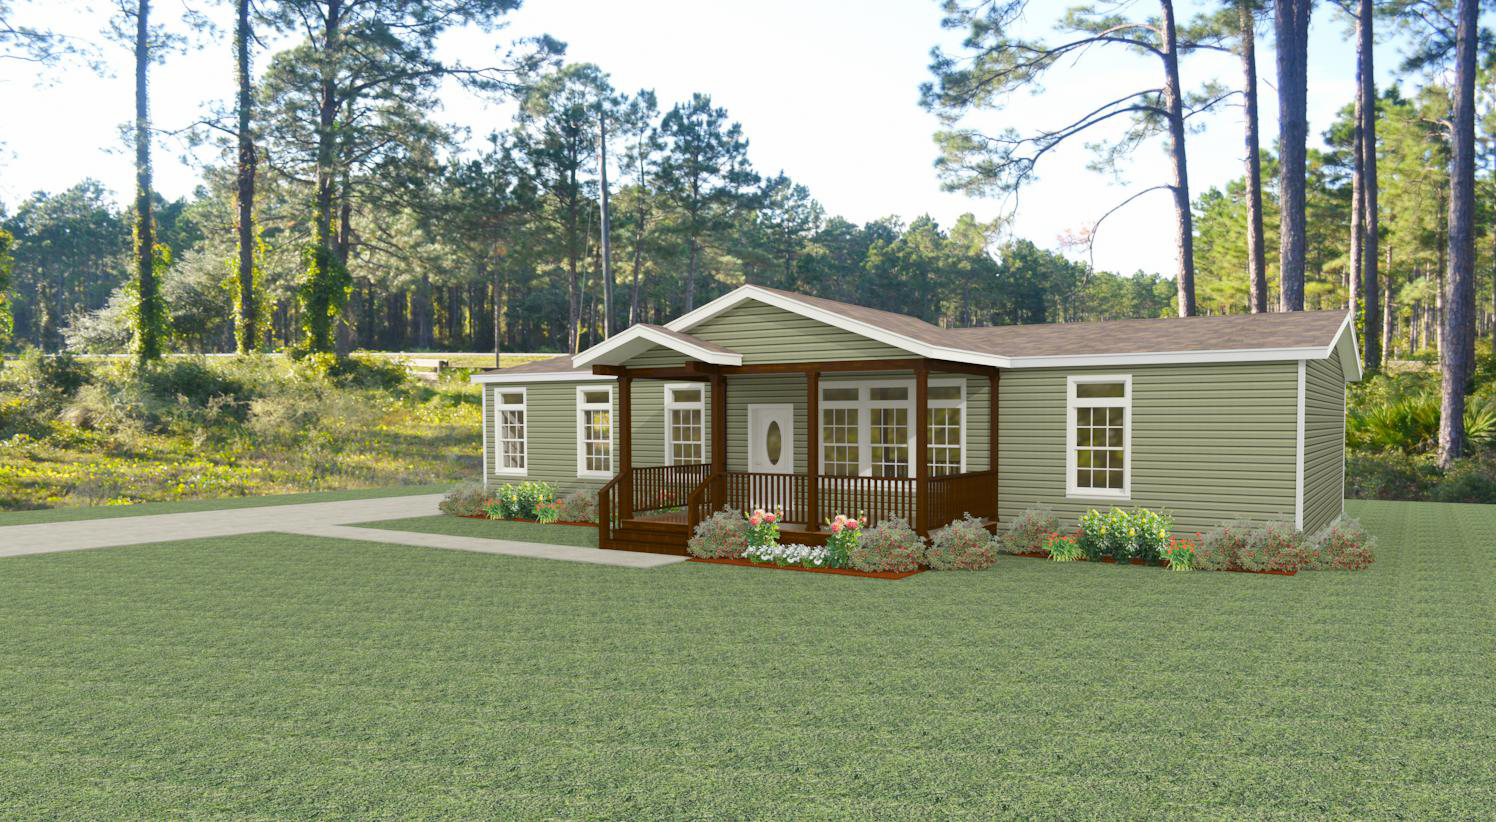 Exterior rendering Jacobsen Homes Floor Plan IMLT-46412B with porch